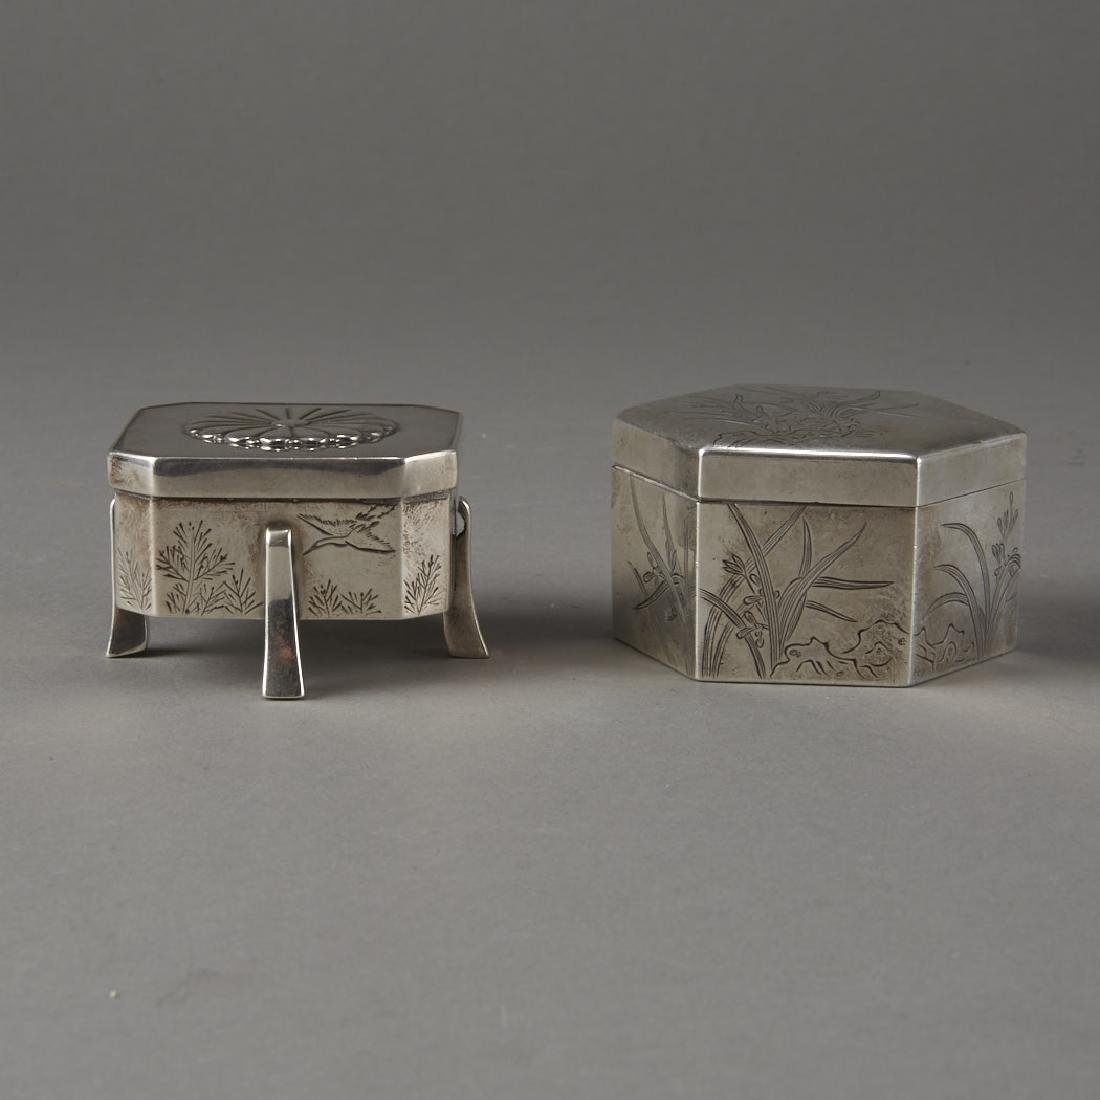 Japanese 20th C. Silver Boxes Decoration